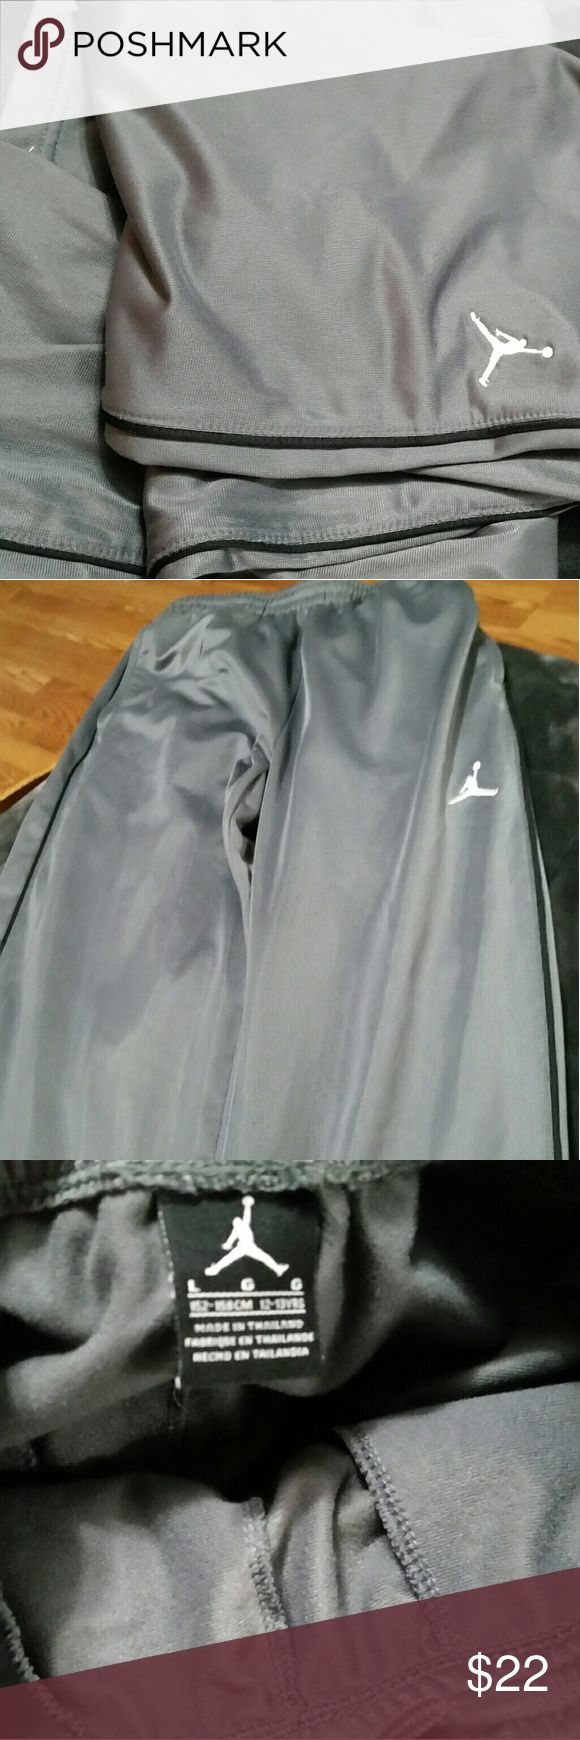 Size L boys Nike Air Jordan warm up pants Grey with a black stripe down the sides Air Jordan warm up pants for boys. Size large.  Excellent condition with no stains or snags. Even smooth clean edges at the ankles. Drawstrings are perfect too! Your son can't lose with these trainers!!! Nike Bottoms Sweatpants & Joggers